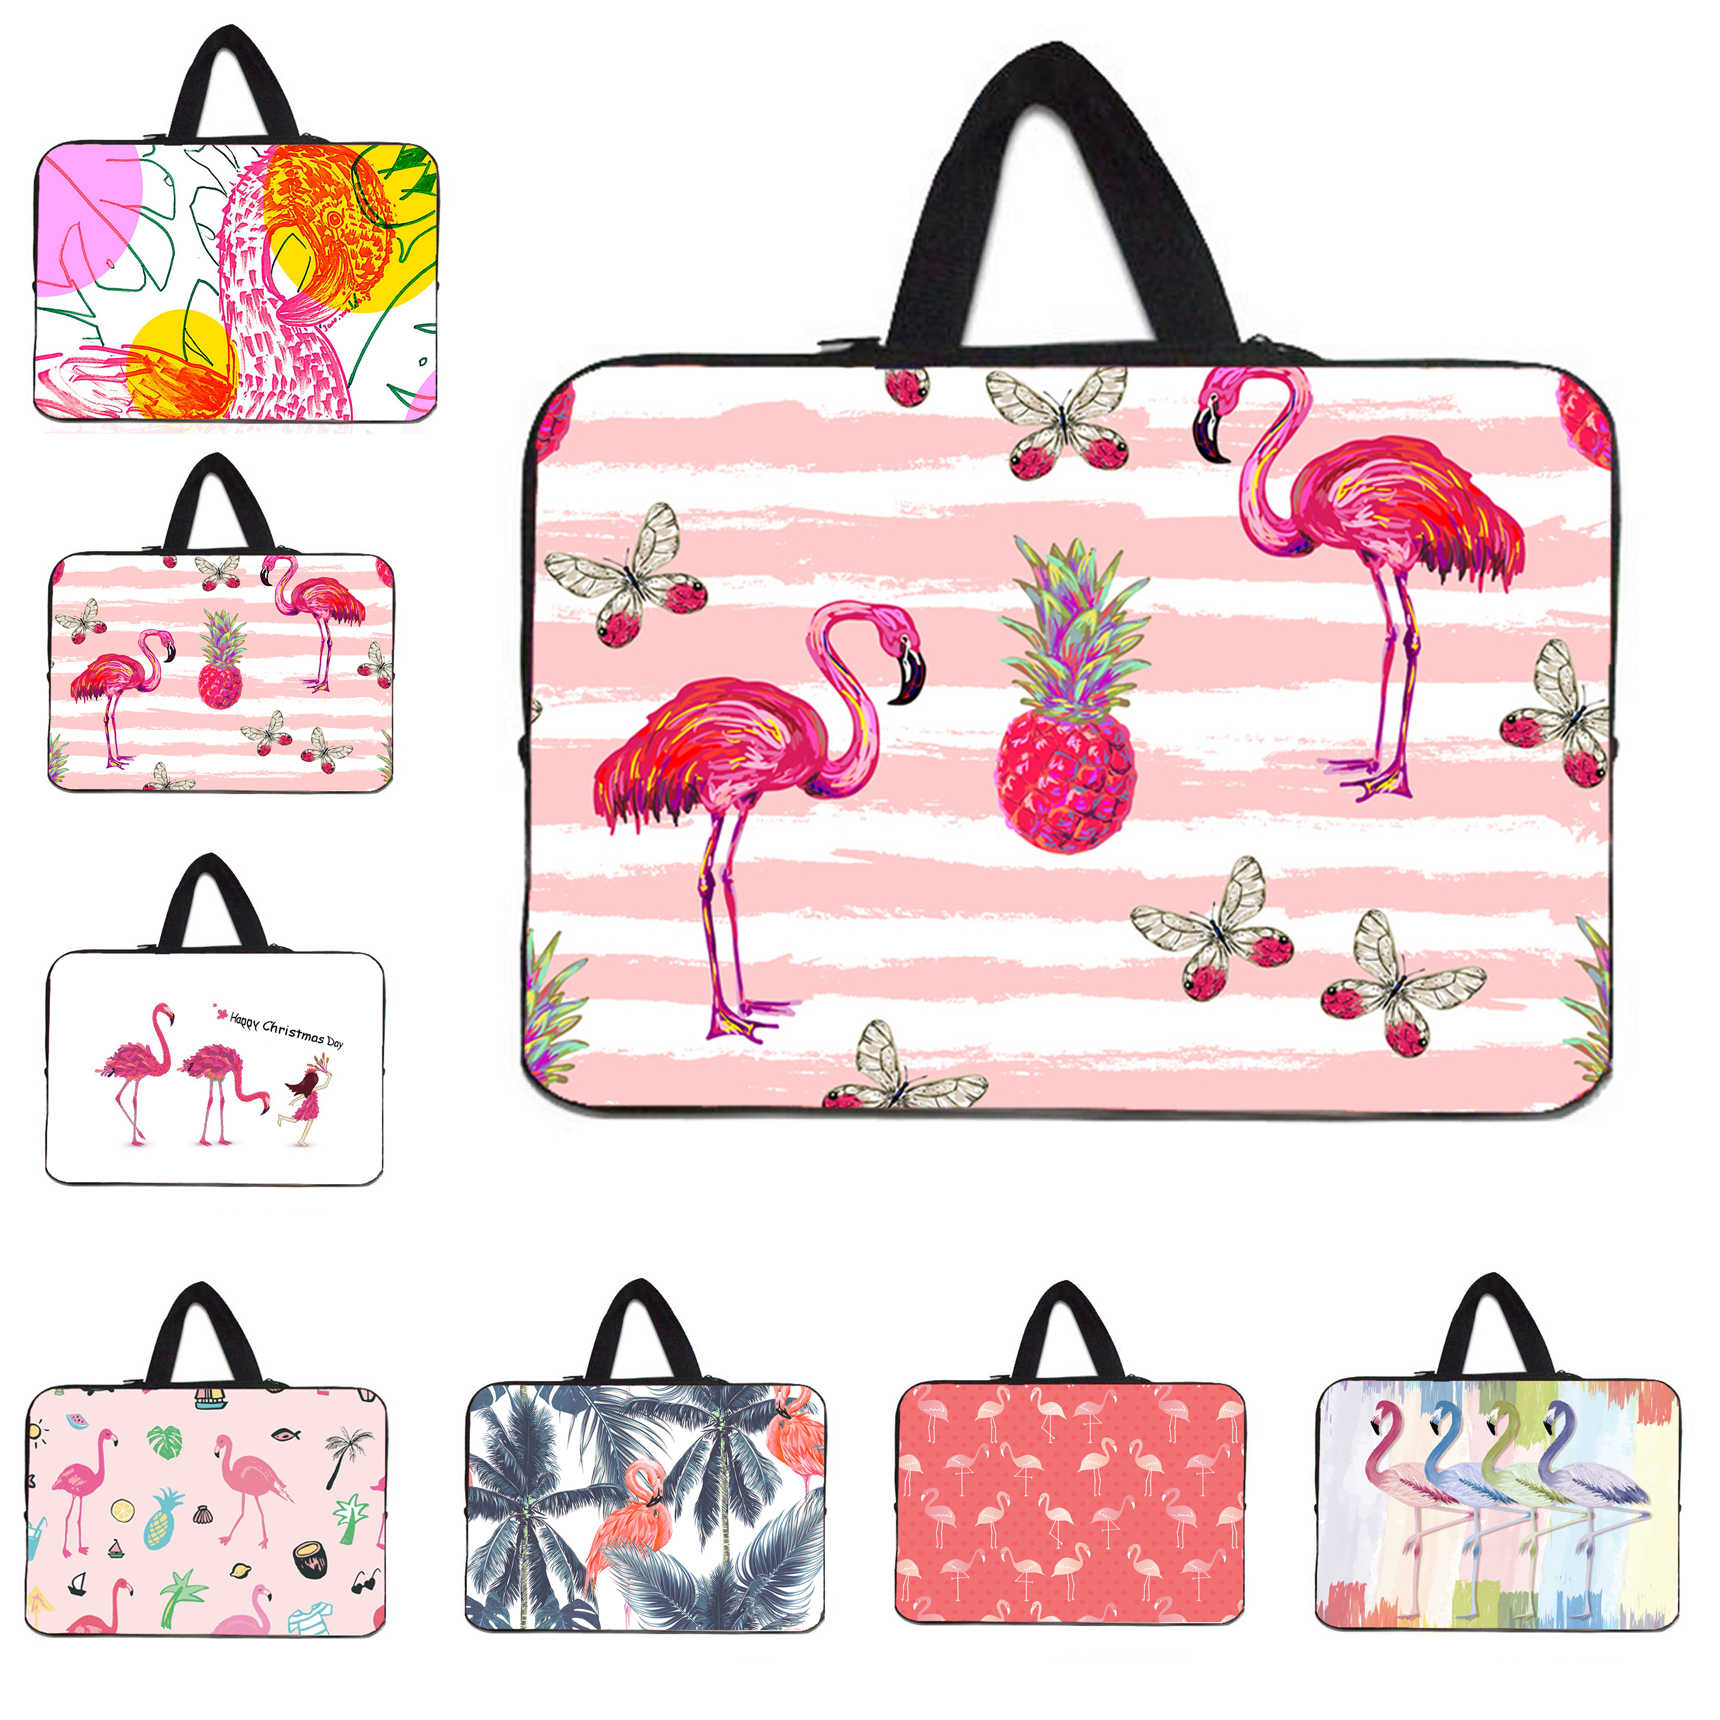 Fashion Flamingo Laptop Casing Tablet 10.1 10 11.6 12 13.3 14 15.4 15.6 17 Inch Notebook Shell Case Netbook Liner lengan Nilon Tas